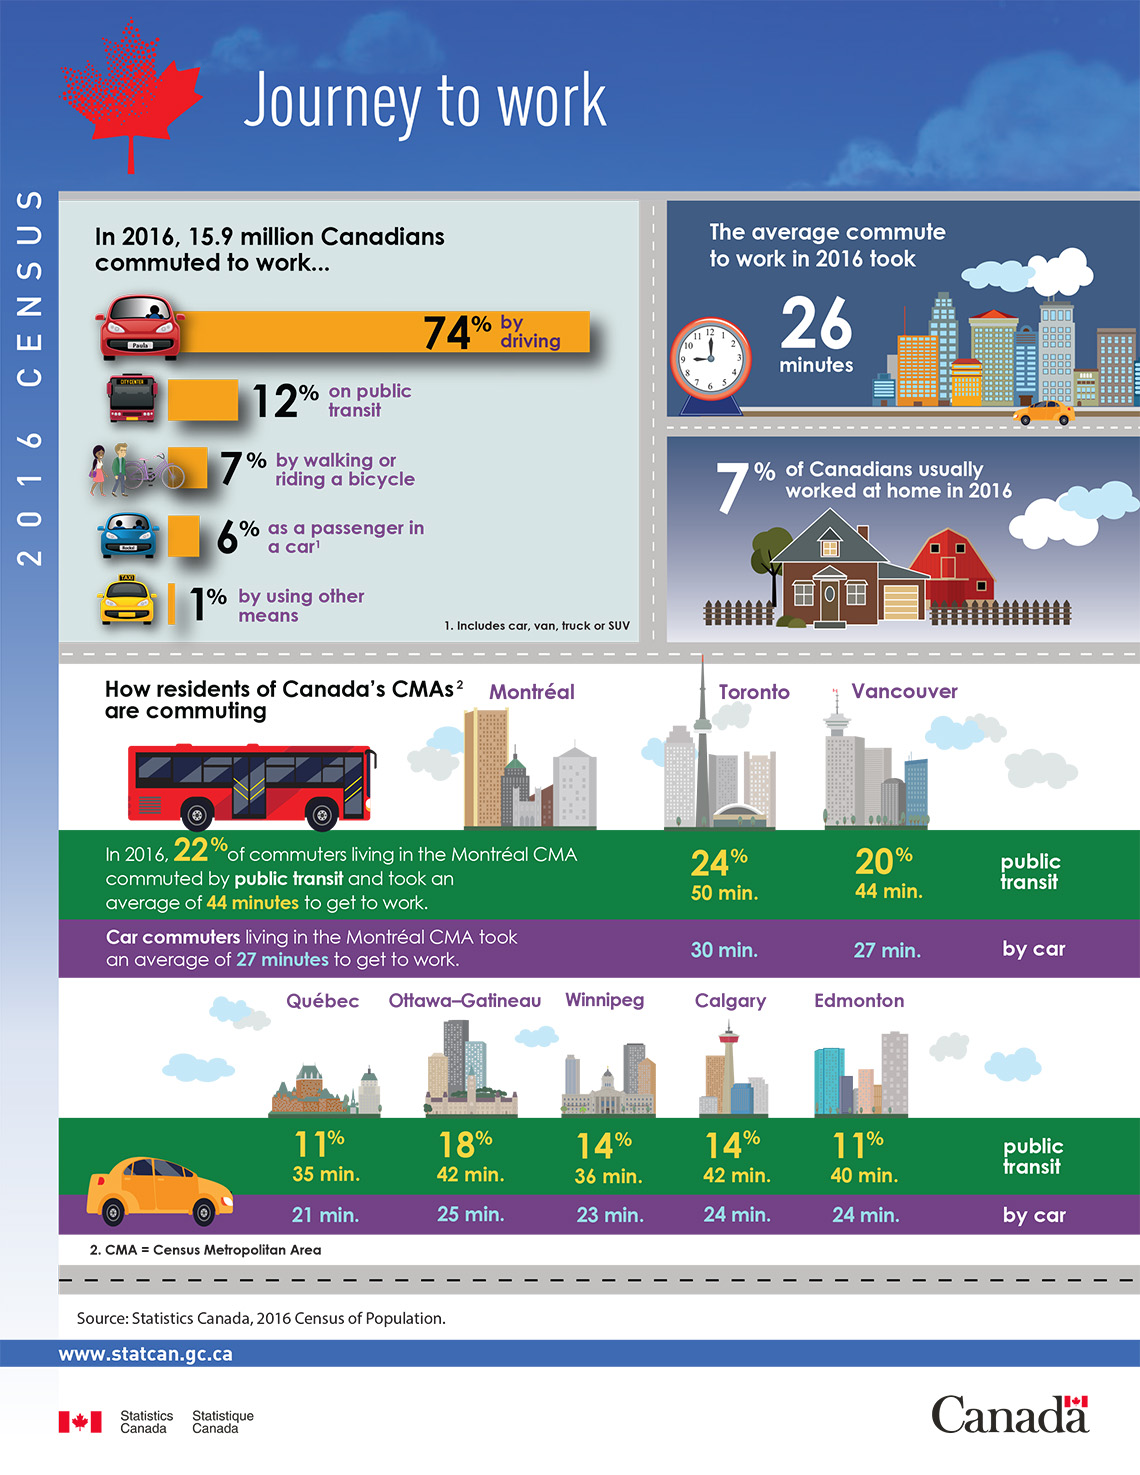 Infographic: Journey to work, 2016 Census of Population